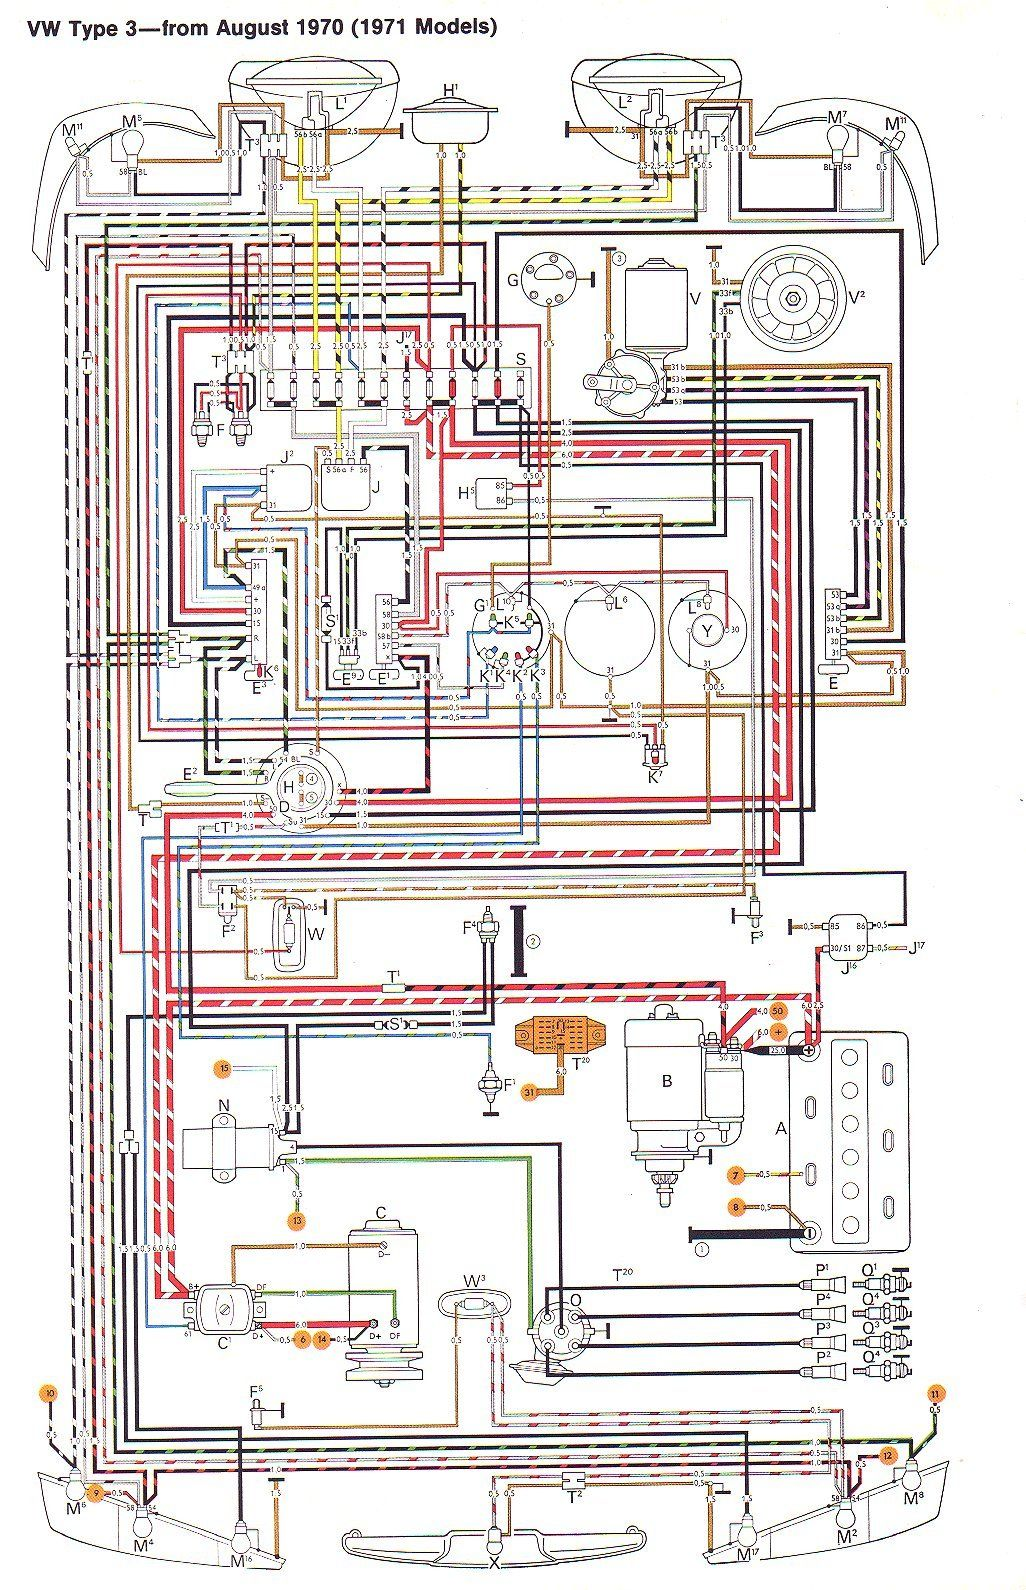 Vw T4 Caravelle Wiring Diagram 30 Images Fuse Box For Sale E0db58370f79a63d02d45f00cf63f44a 71 T3 Ruthie Pinterest Volkswagen Engine